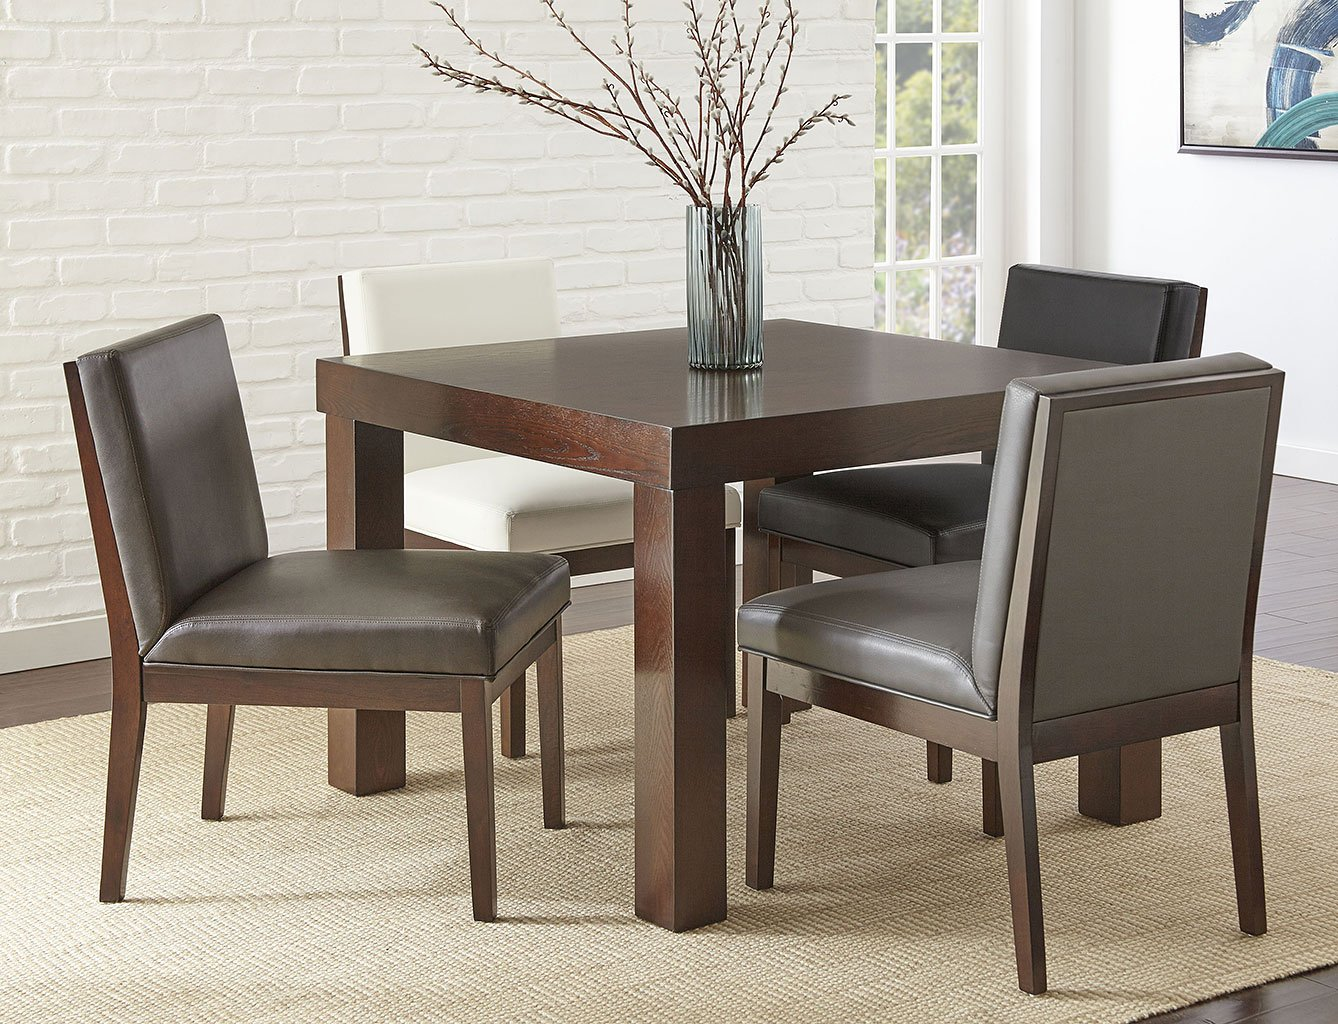 Stella Dining Room Set W/ Emma Chairs